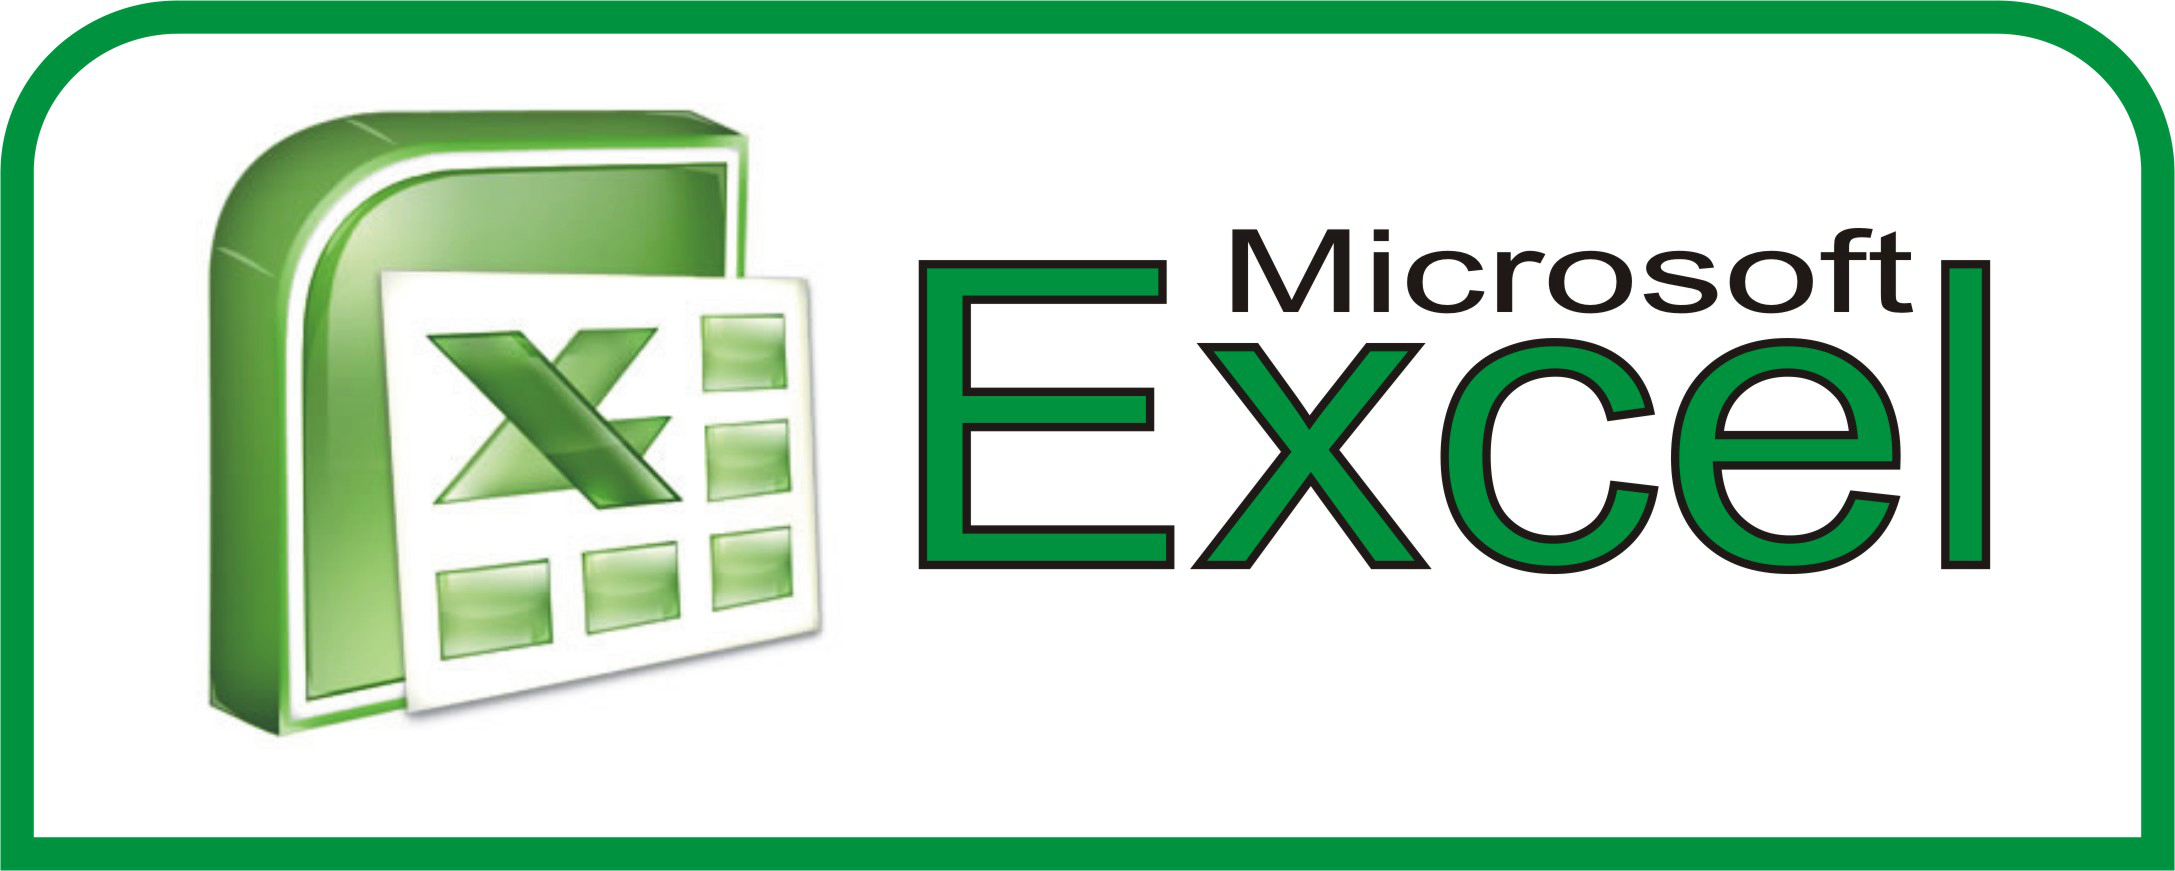 Ediblewildsus  Prepossessing  Excel Shortcuts You Probably Didnt Know About  Techdissected With Outstanding Excel Data Validation Named Range Besides Divide Columns In Excel Furthermore Excel Least Squares Regression With Beautiful Convert Csv To Excel Online Also Using Functions In Excel In Addition Excel How To Delete Empty Rows And Averageif In Excel As Well As What Does Mean Excel Additionally List Of Countries Excel From Techdissectedcom With Ediblewildsus  Outstanding  Excel Shortcuts You Probably Didnt Know About  Techdissected With Beautiful Excel Data Validation Named Range Besides Divide Columns In Excel Furthermore Excel Least Squares Regression And Prepossessing Convert Csv To Excel Online Also Using Functions In Excel In Addition Excel How To Delete Empty Rows From Techdissectedcom